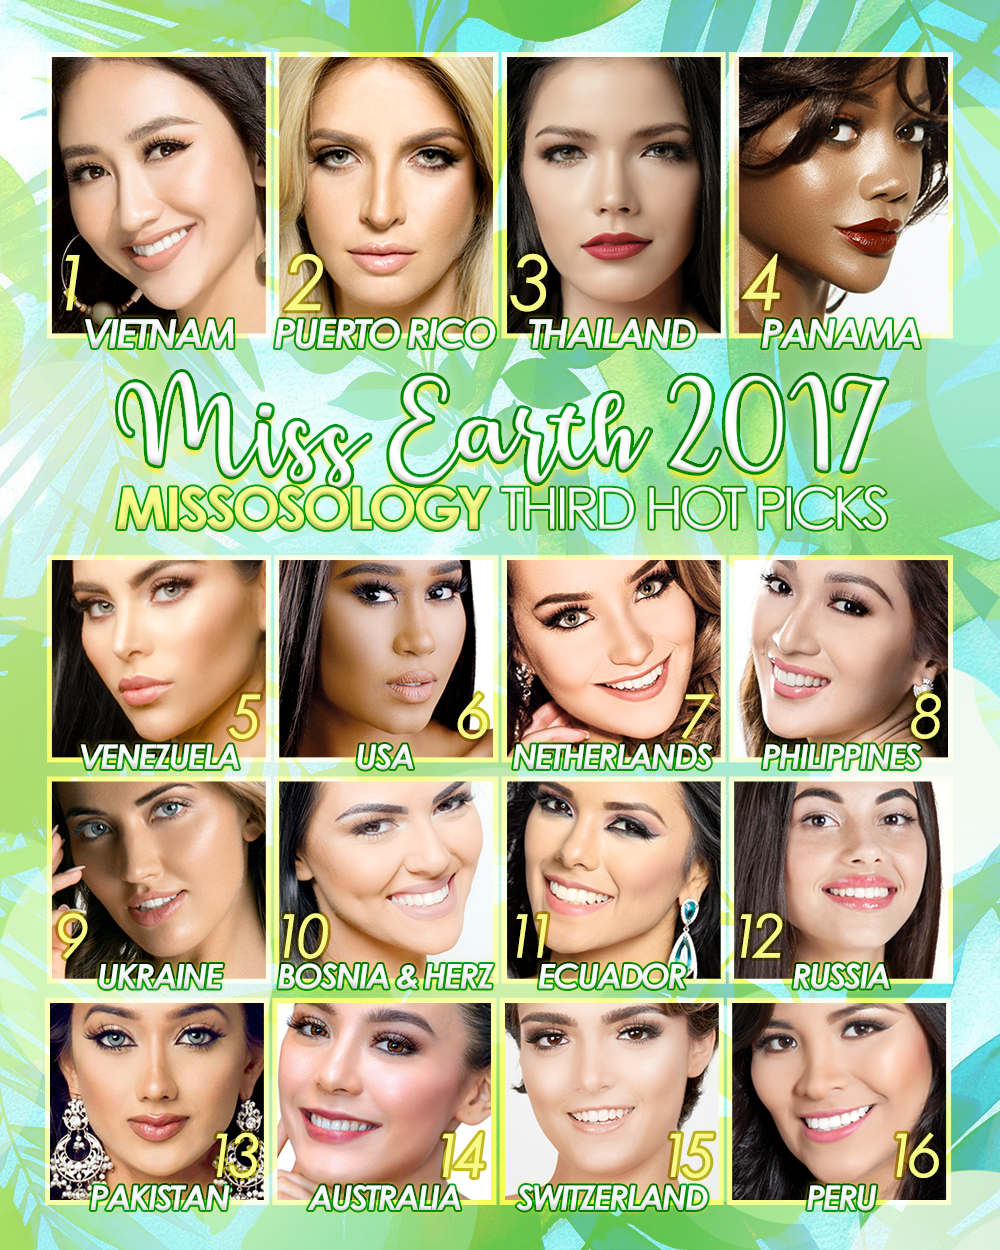 Miss Earth 2017 Third Hot Picks by Missosology